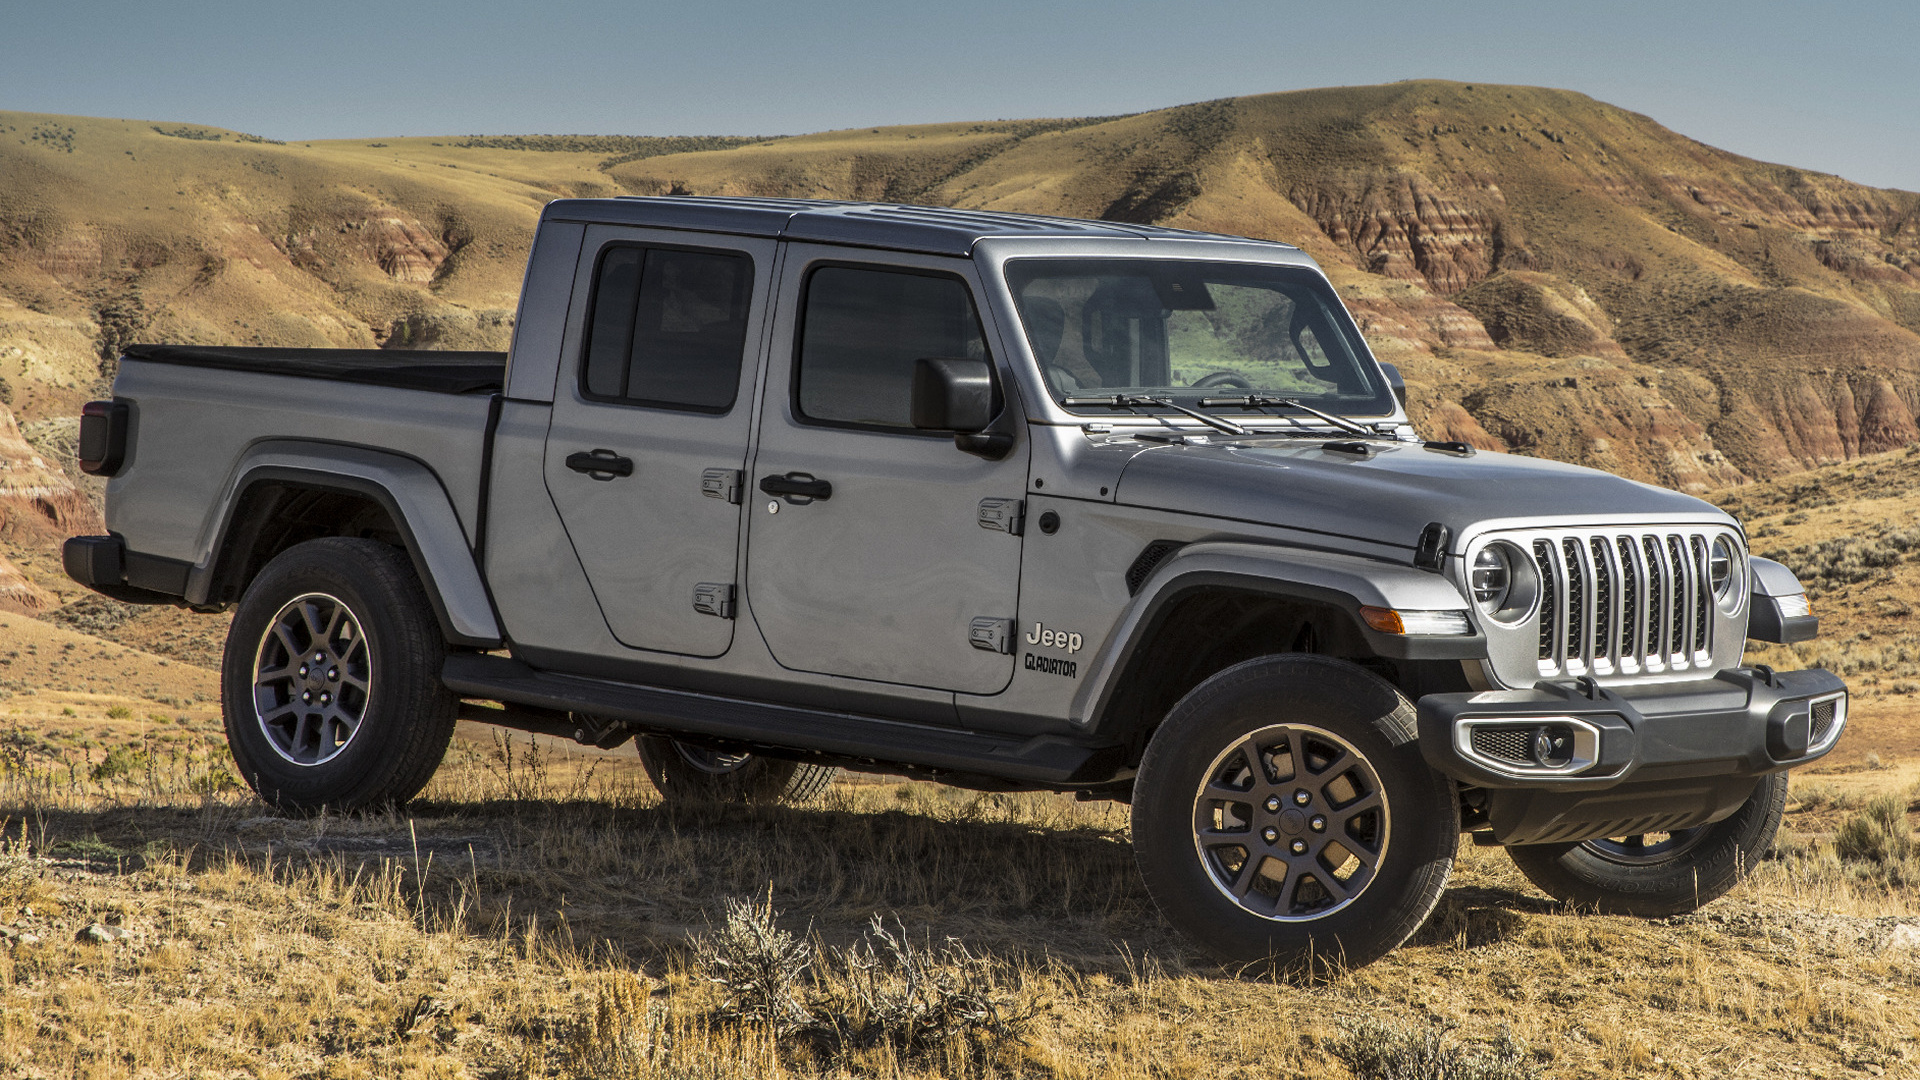 2020 Jeep Gladiator Overland   Wallpapers and HD Images Car Pixel 1920x1080